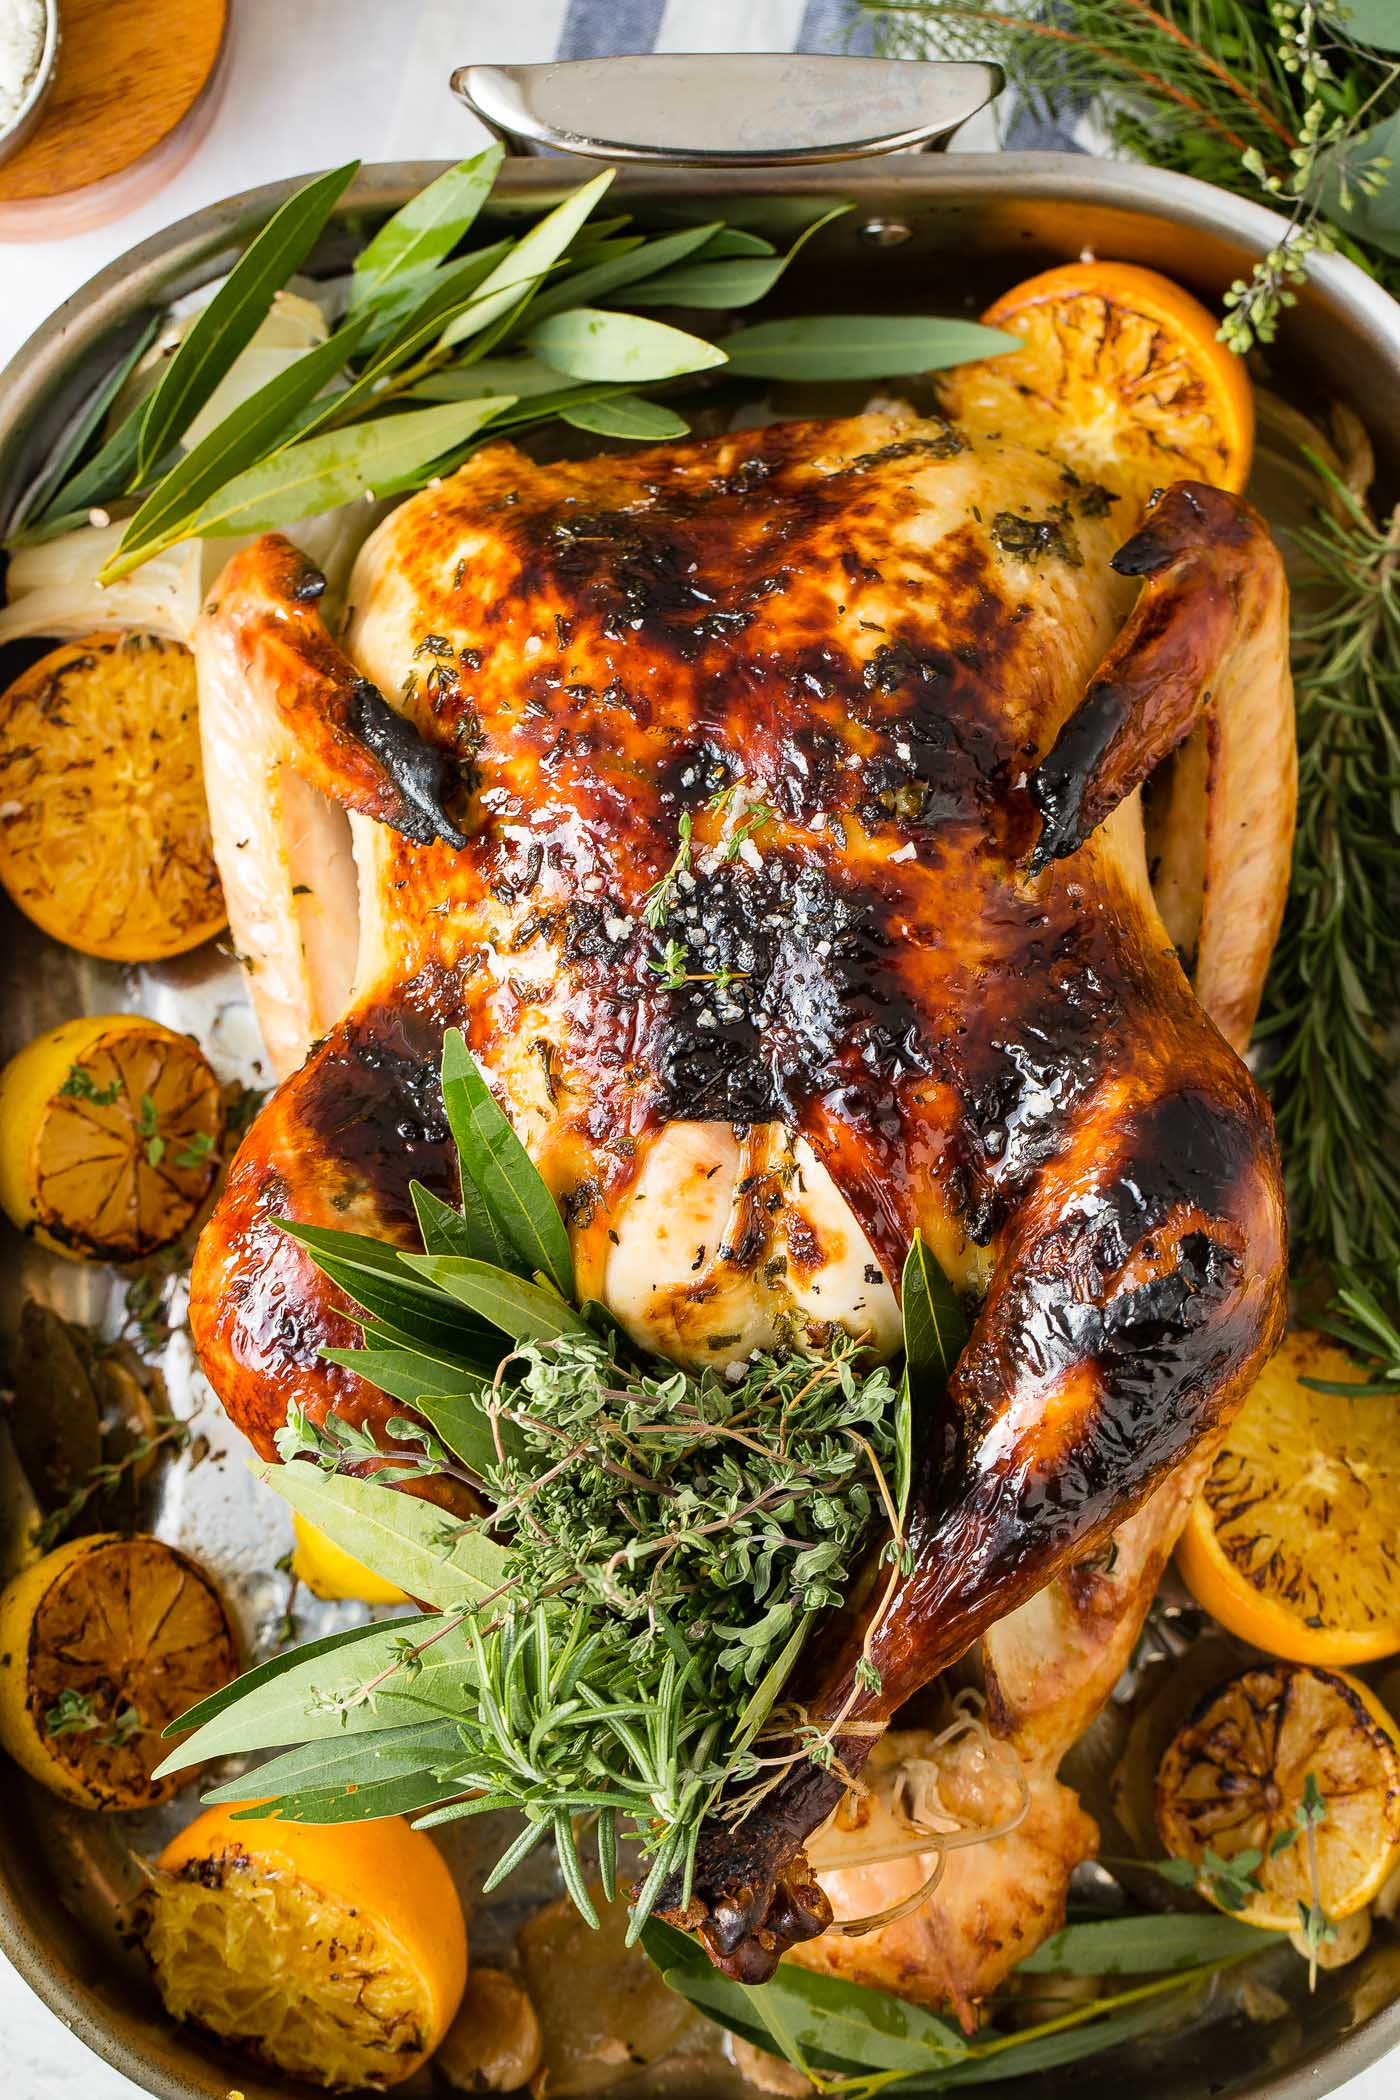 A photo of a whole roasted turkey surrounded by roasted lemon halves and fresh herbs.